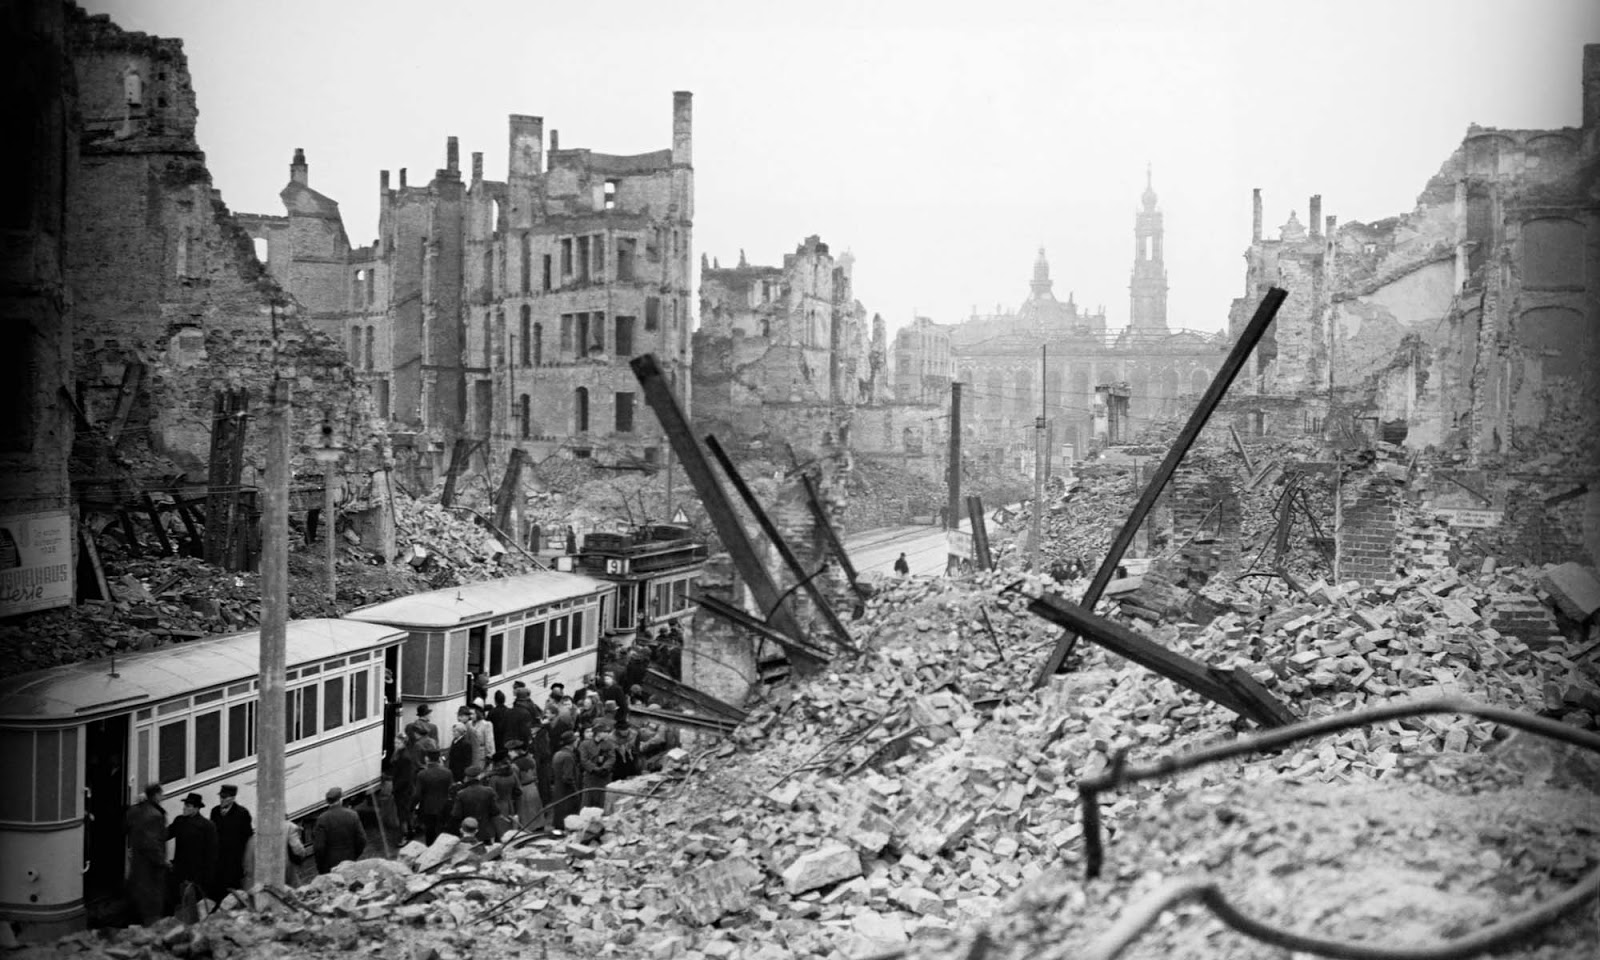 The destruction of the city provoked unease in intellectual circles in Britain. According to Max Hastings, by February 1945, attacks upon German cities had become largely irrelevant to the outcome of the war and the name of Dresden resonated with cultured people all over Europe.